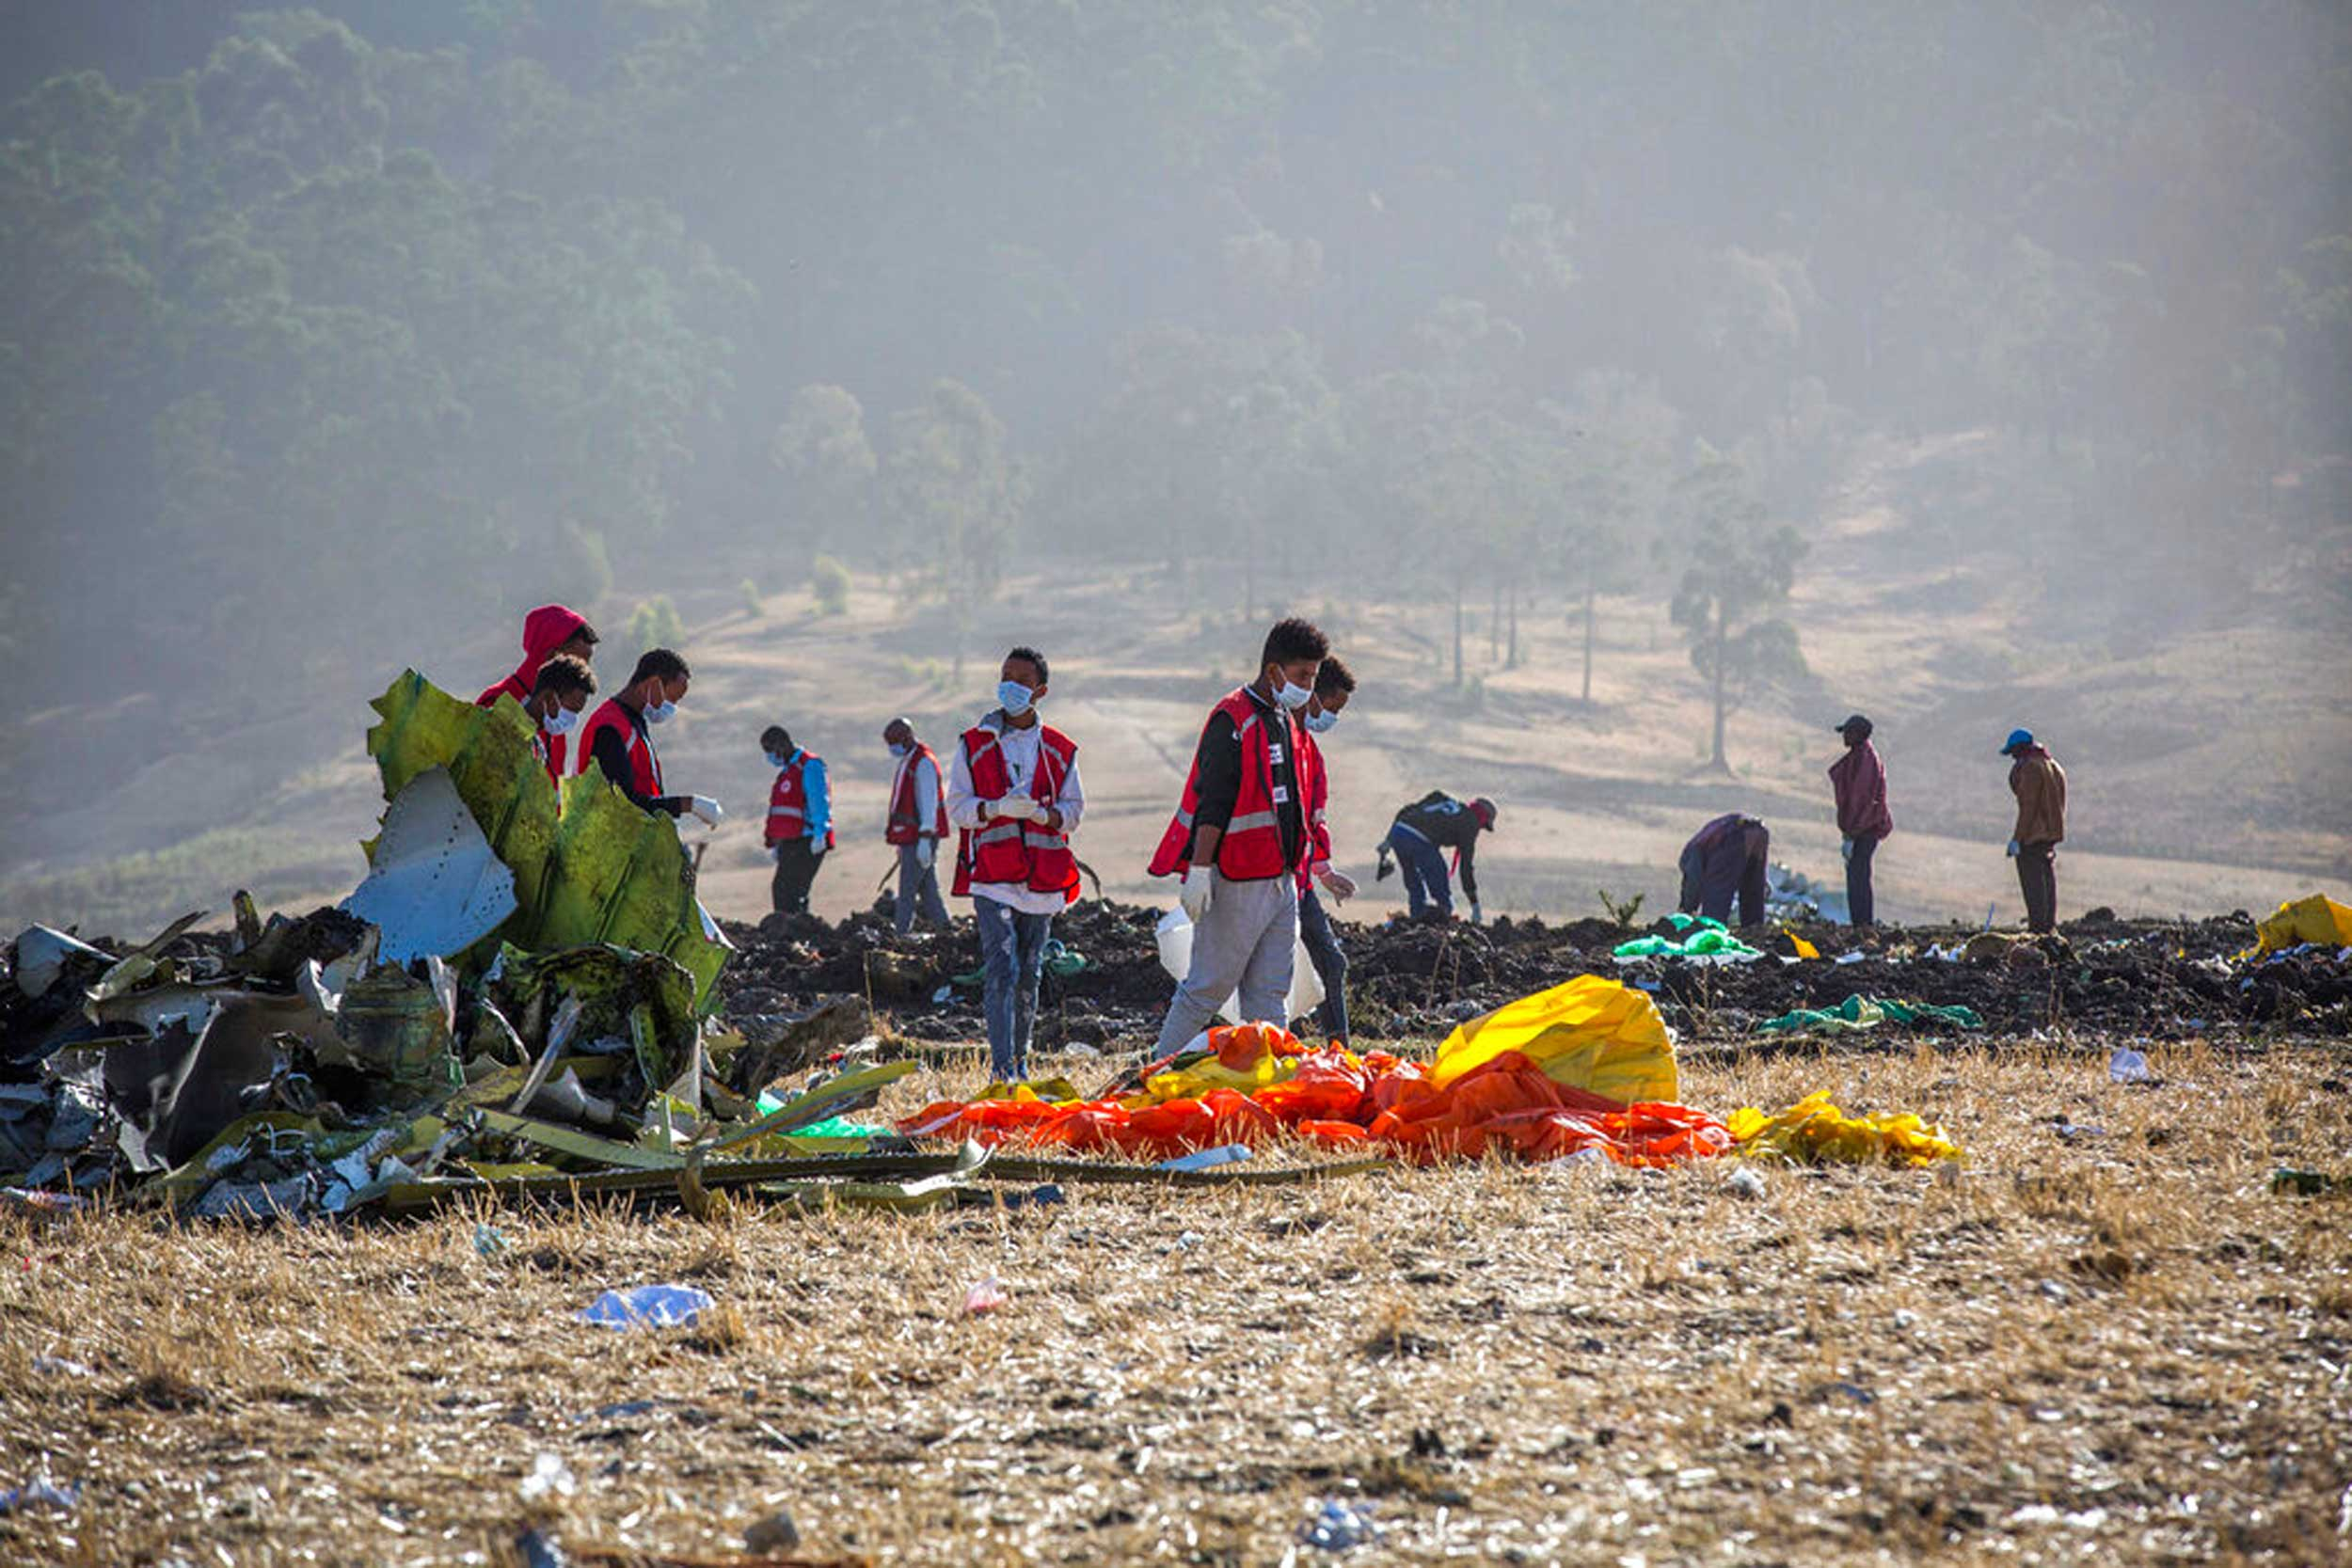 Emergency personnel at the scene of an Ethiopian Airlines flight crash near Bishoftu, or Debre Zeit, south of Addis Ababa, on March 11, 2019.